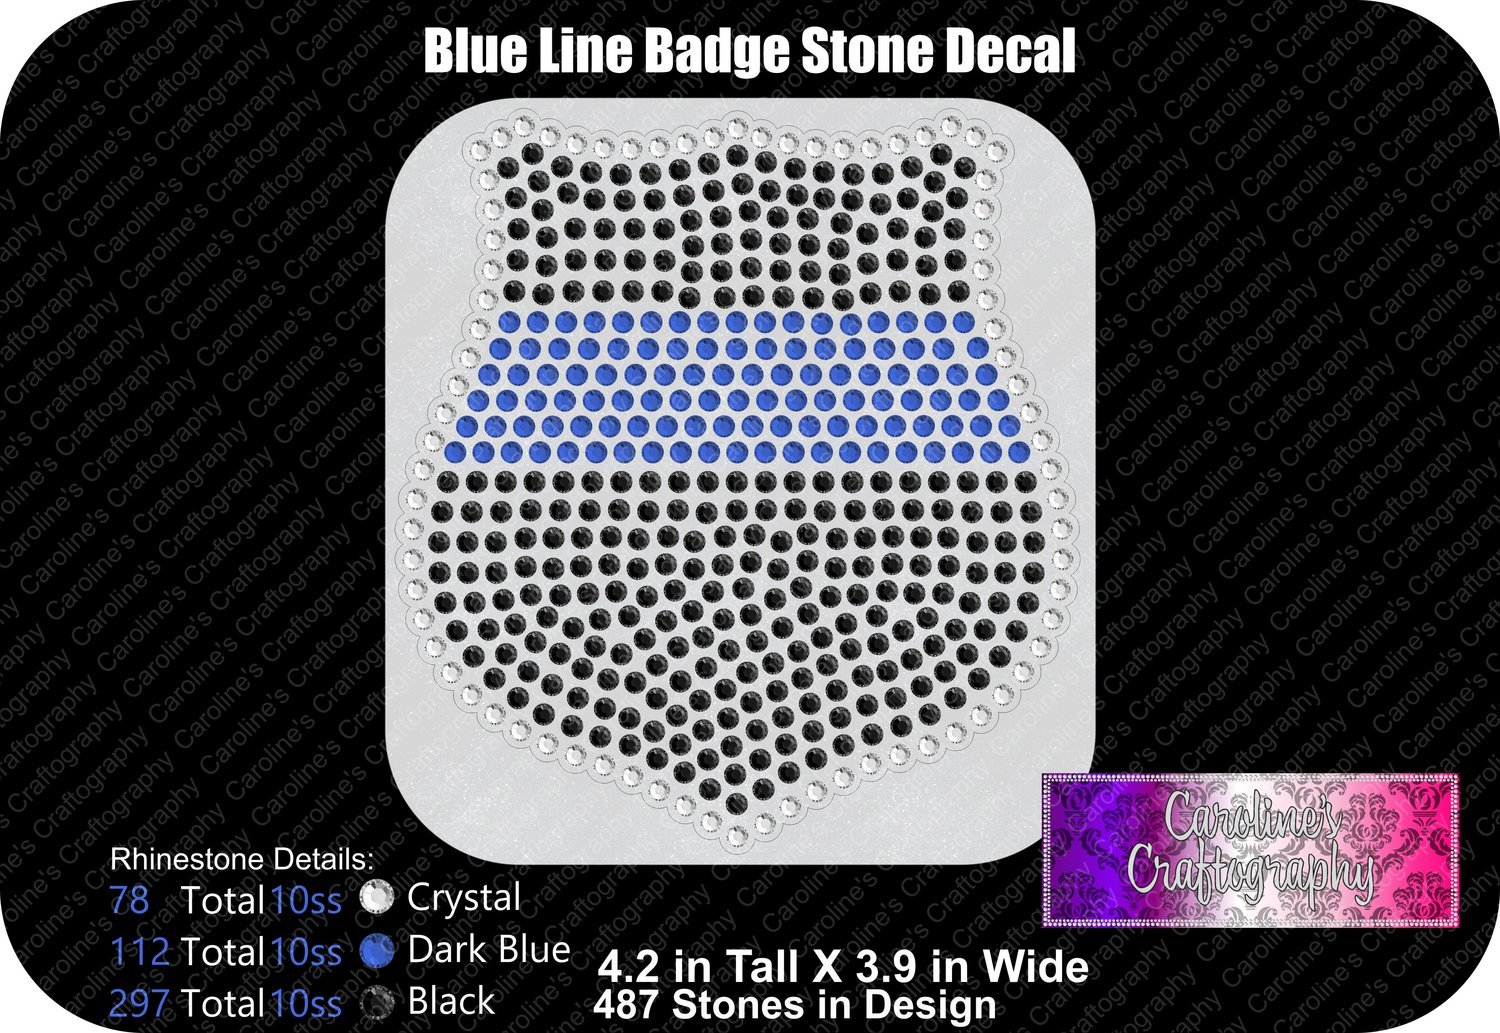 Blue Line Badge Stone Decal